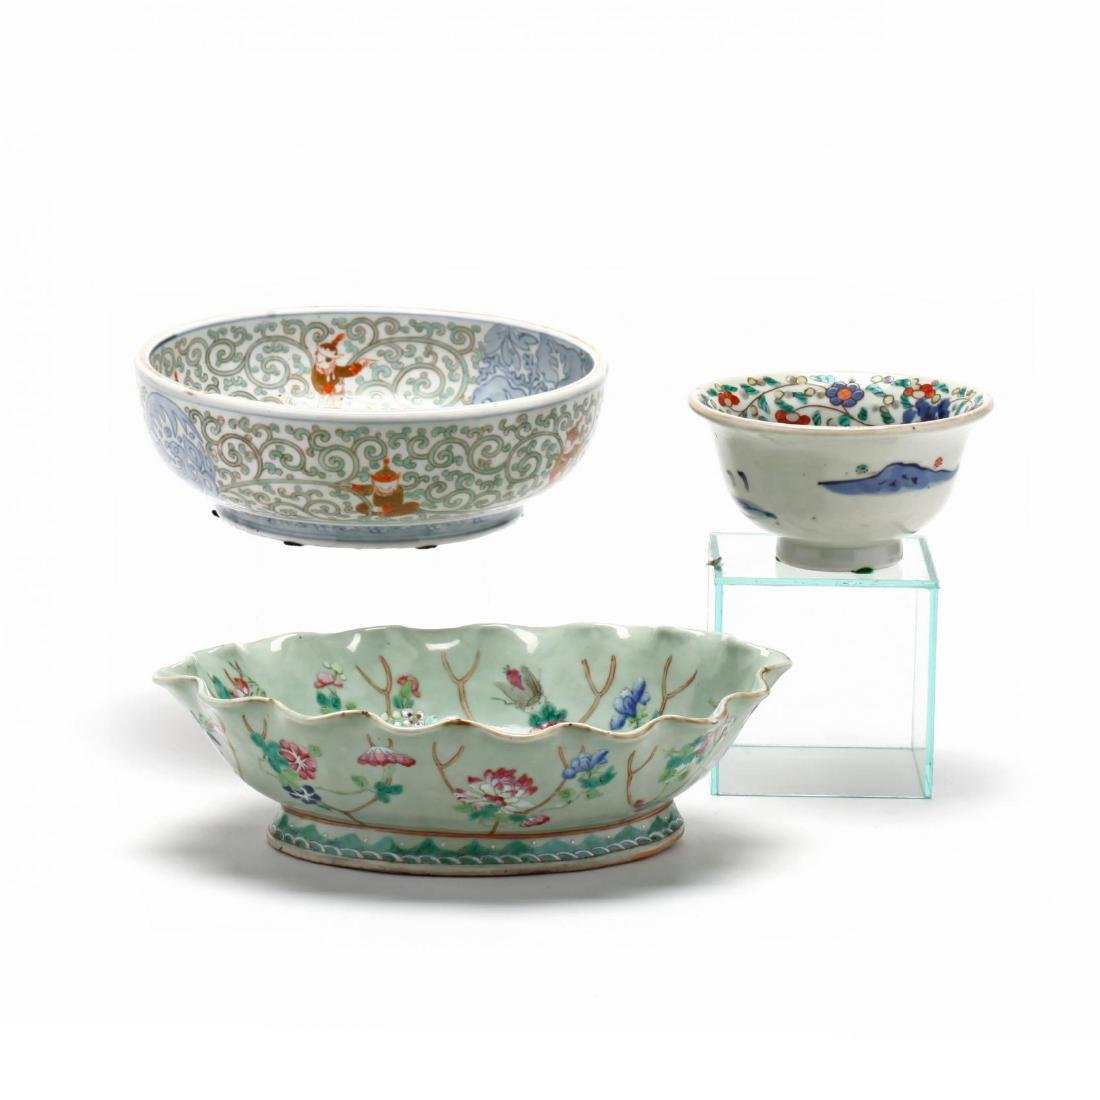 A Group of Chinese Porcelain Tableware - 2